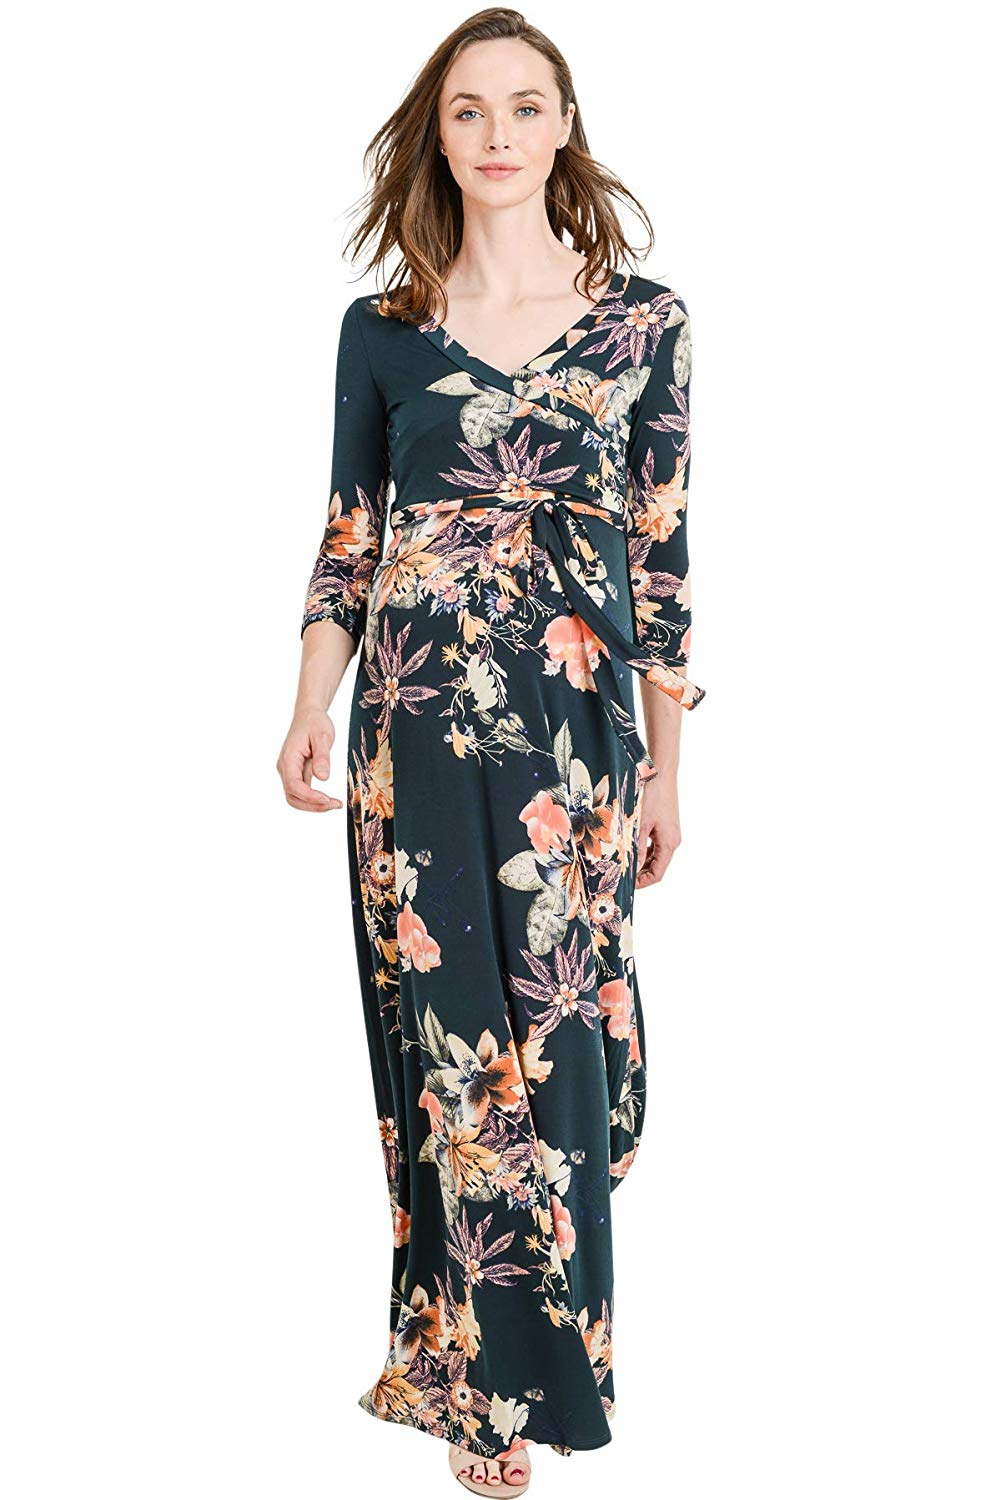 Floral Faux Wrap Maxi Maternity Dress - Mommylicious